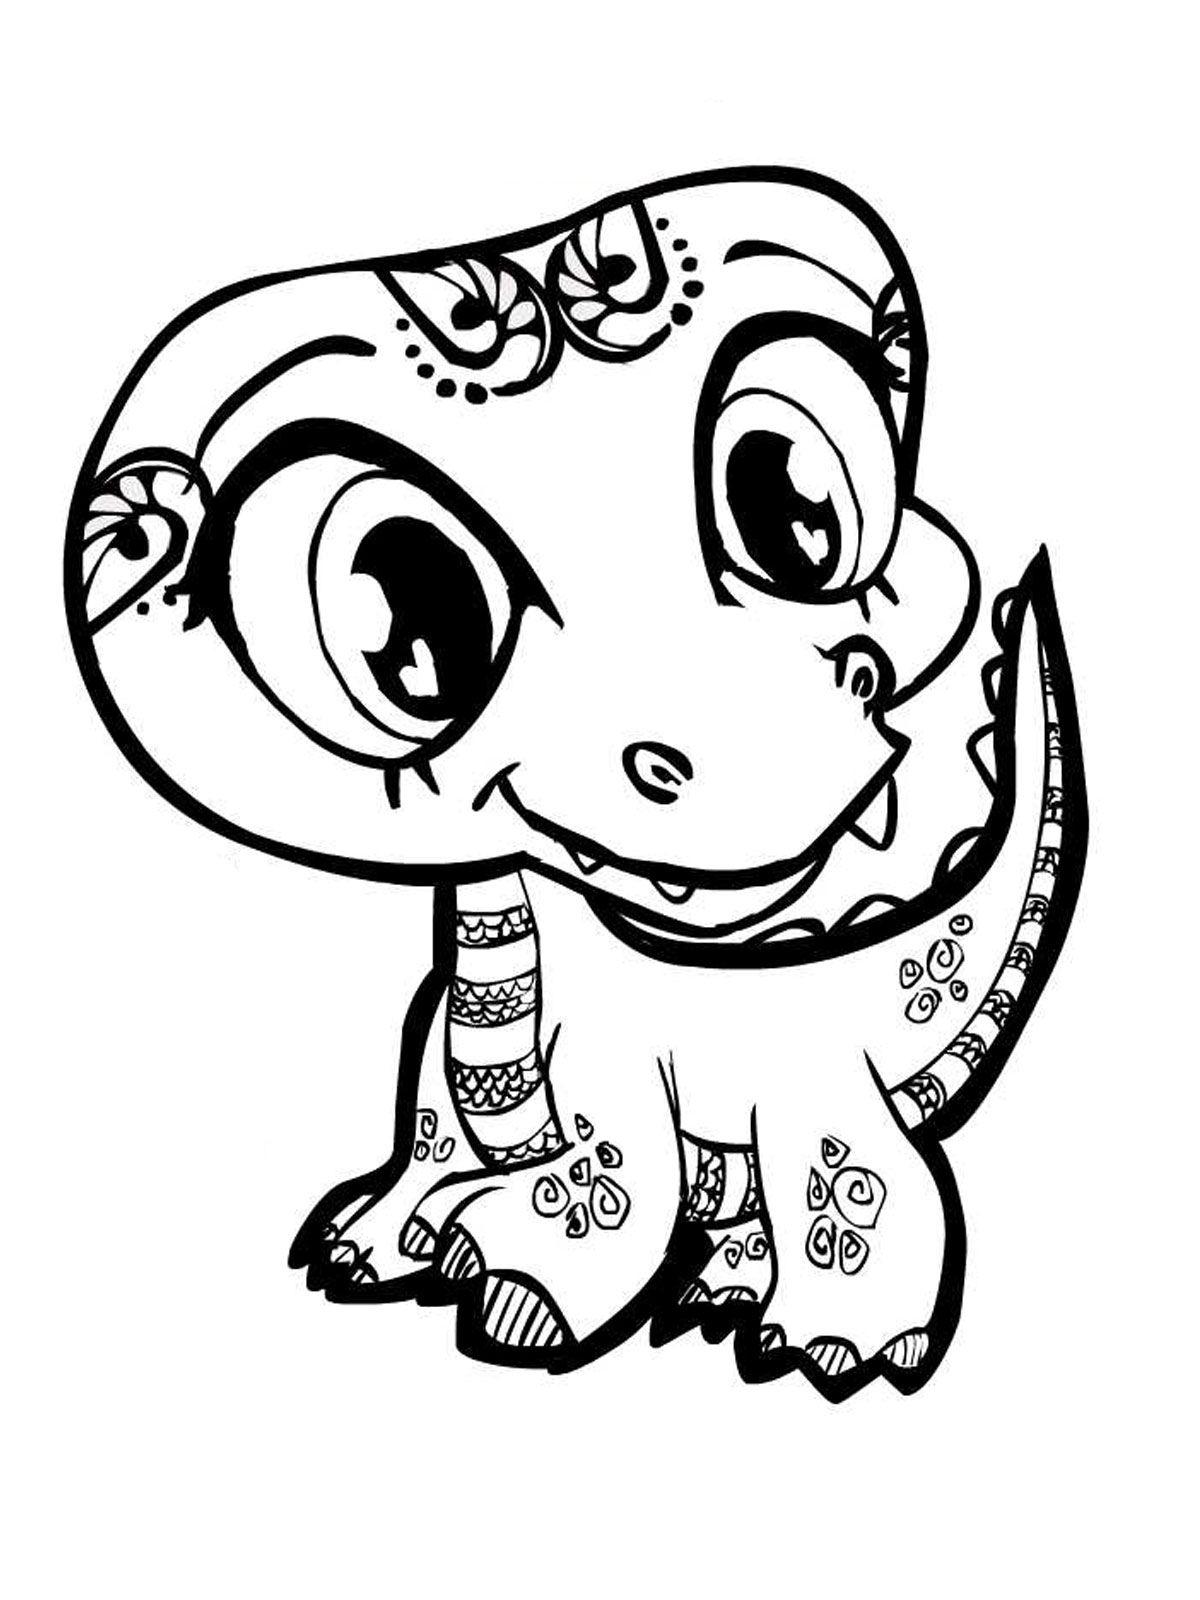 Cute Smiling Alligator Kids Coloring Pages RealisticColoringPages